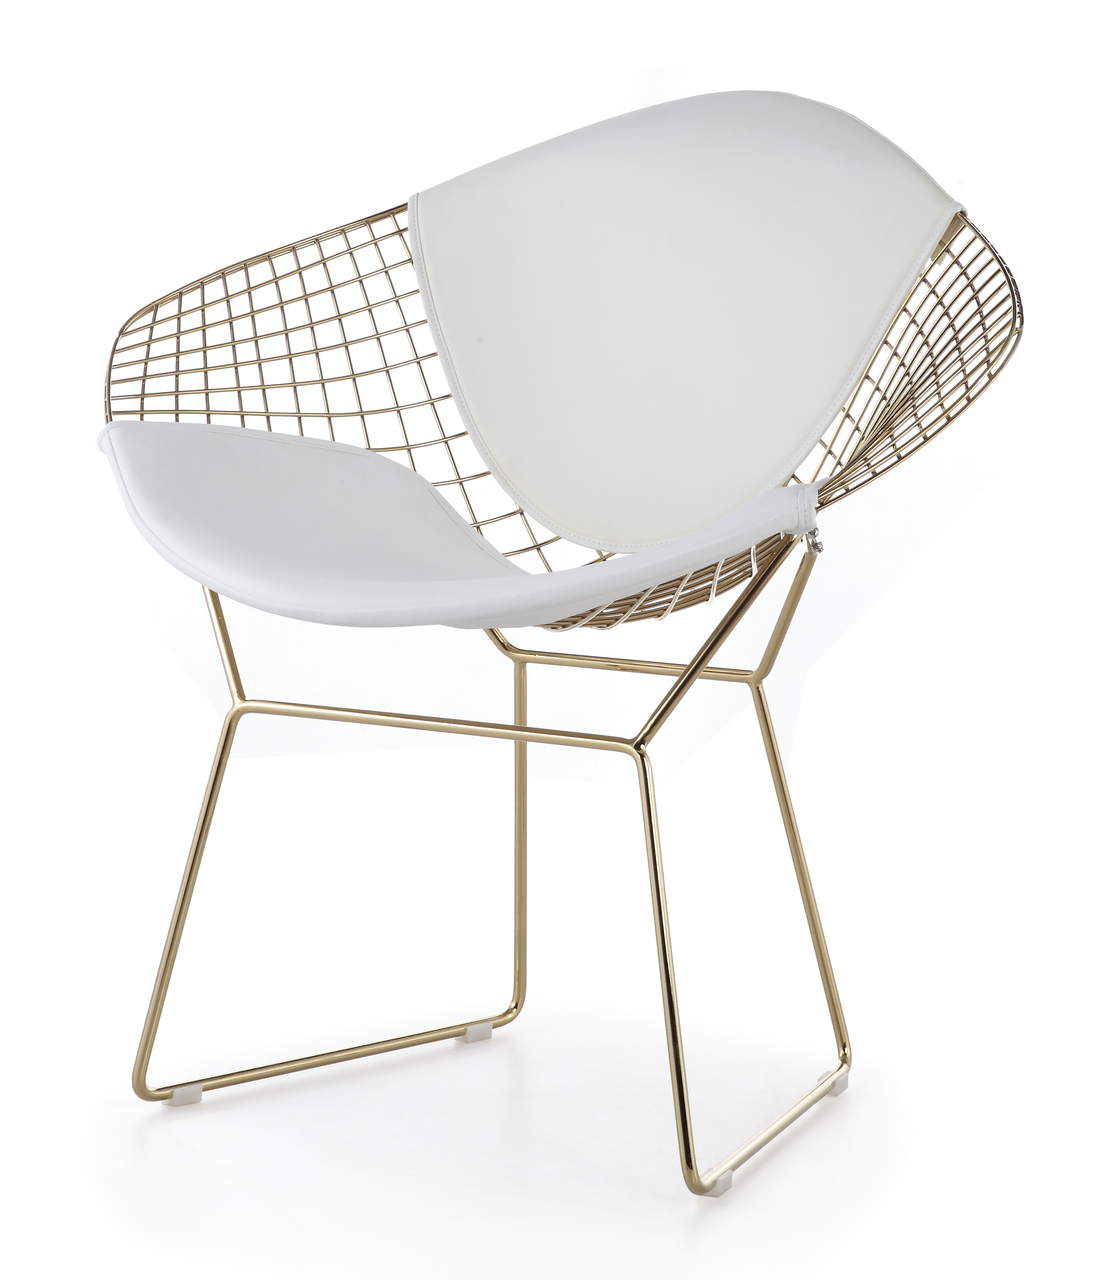 Bertoia diamond chair dimensions - Bertoia Diamond Chair Gold